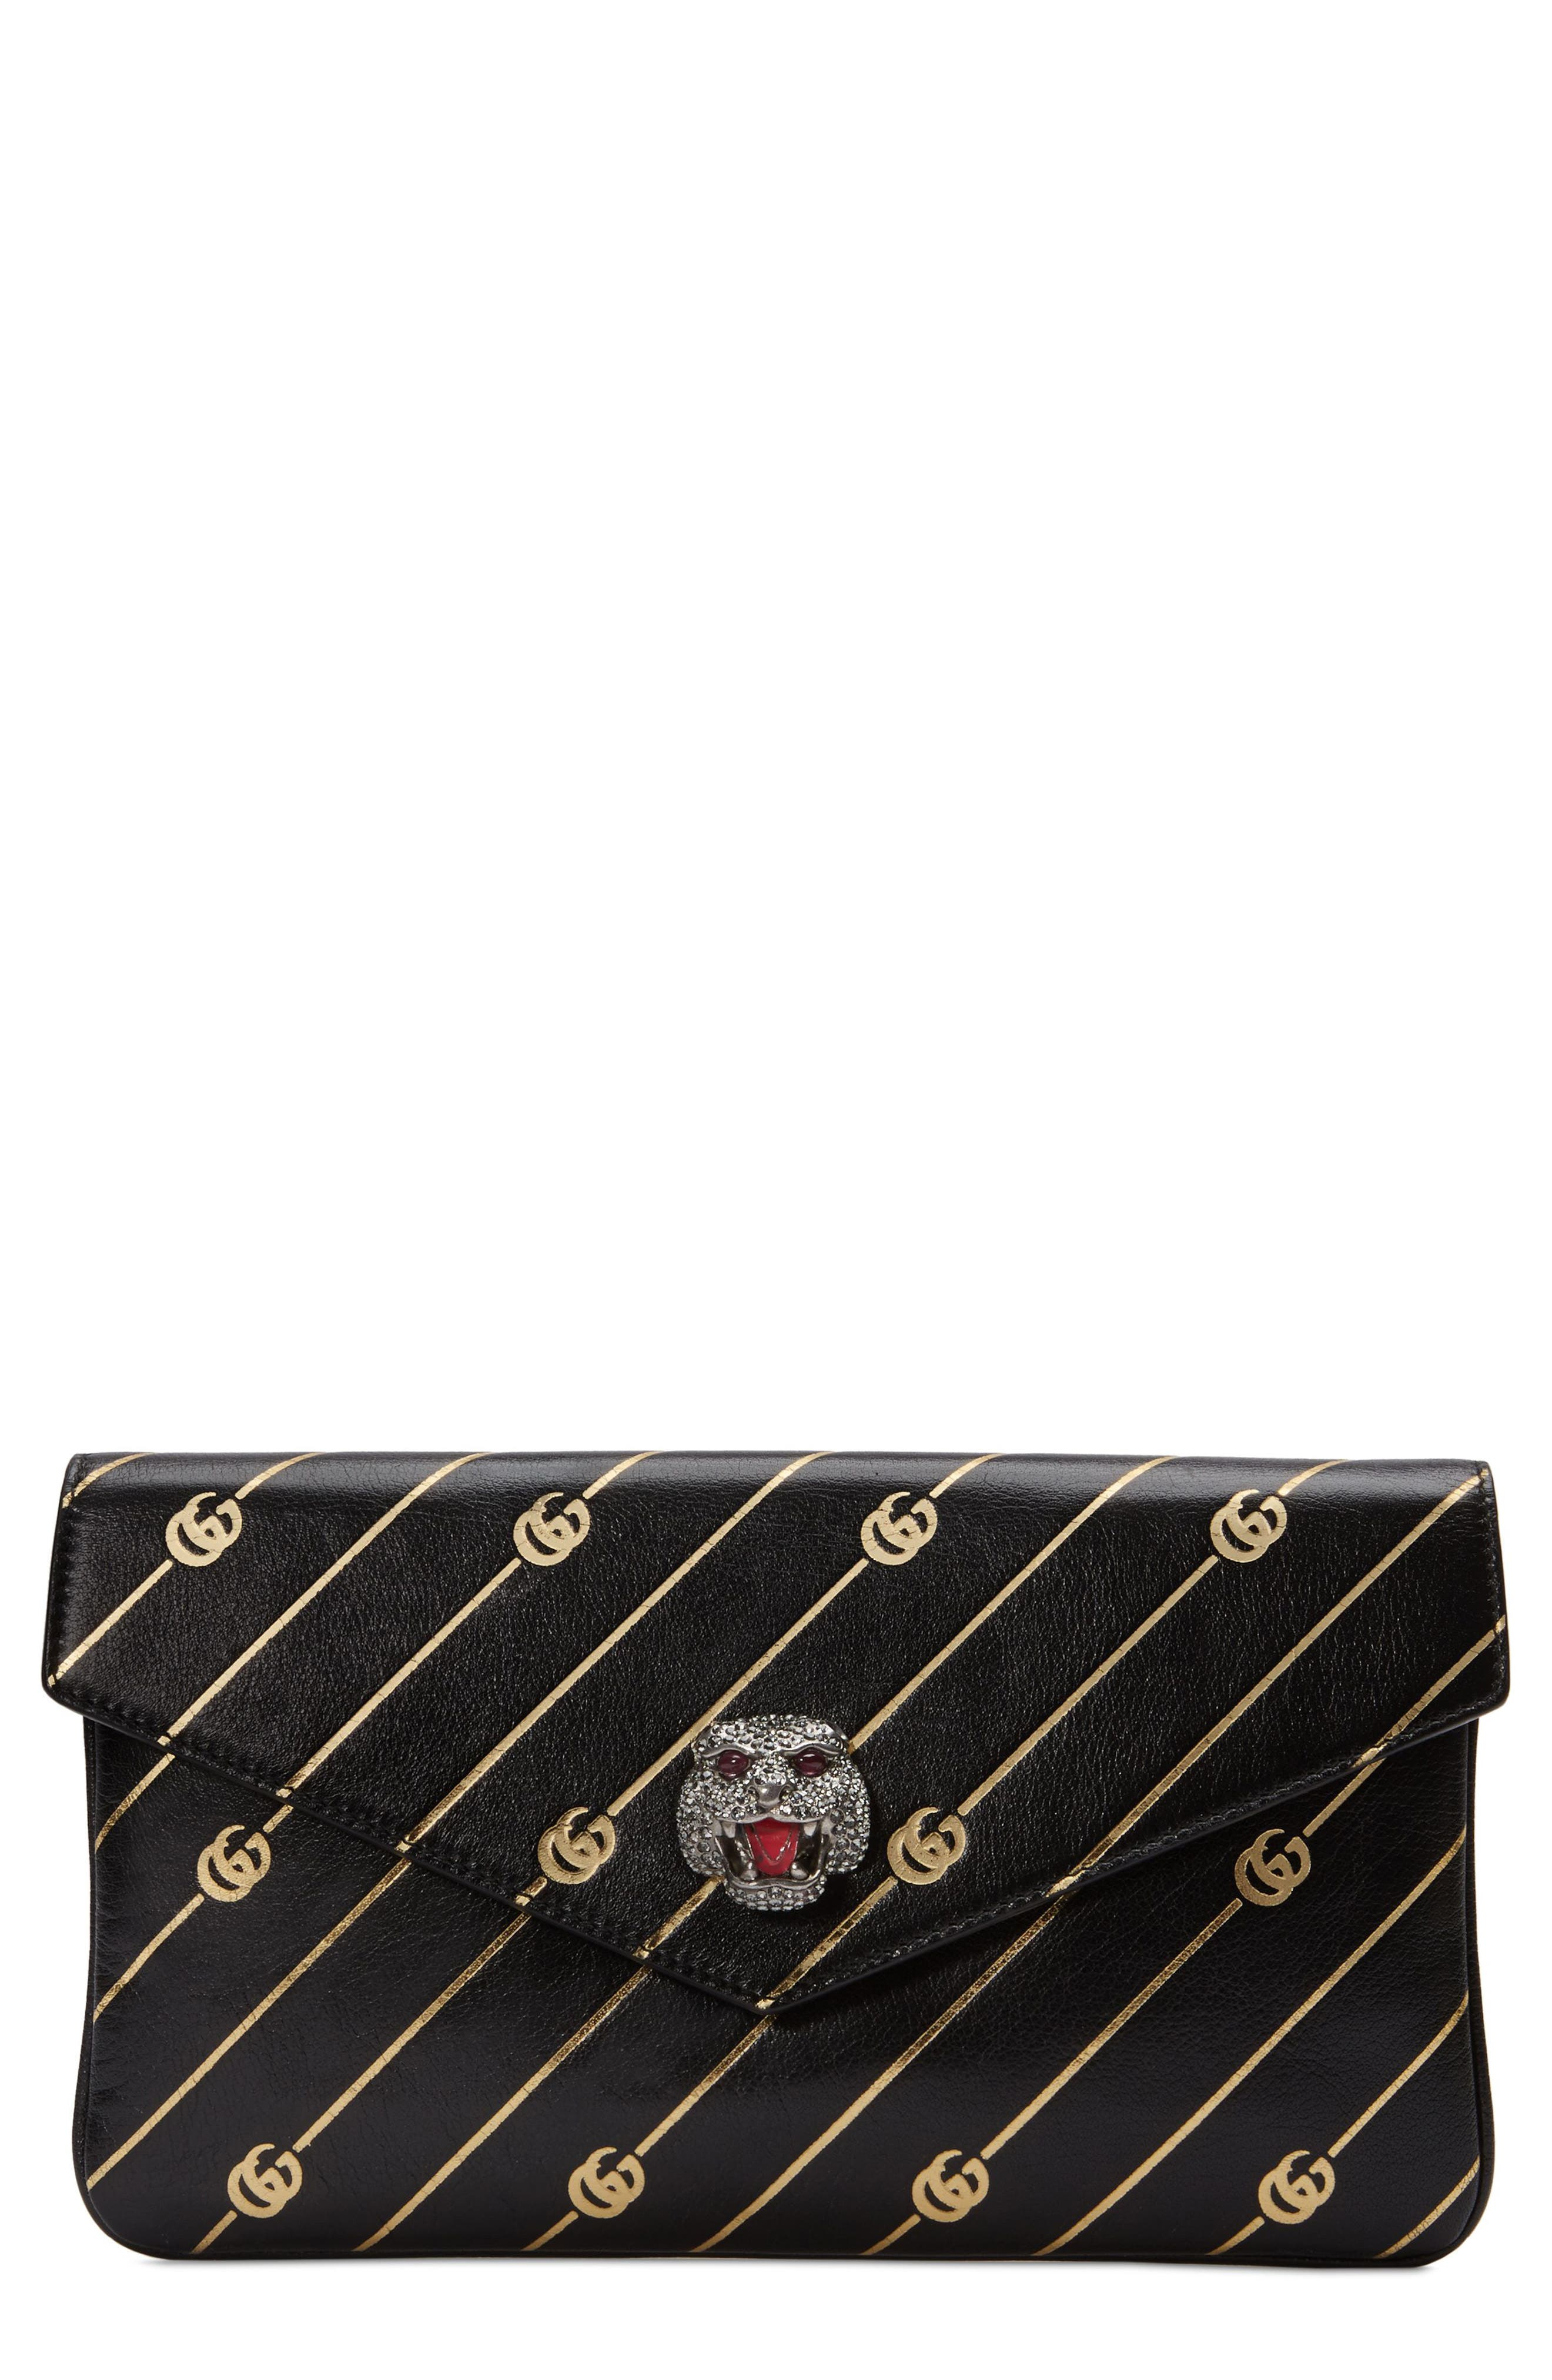 Broadway GG Archive-P Leather Envelope Clutch,                         Main,                         color, NERO ORO MULTI